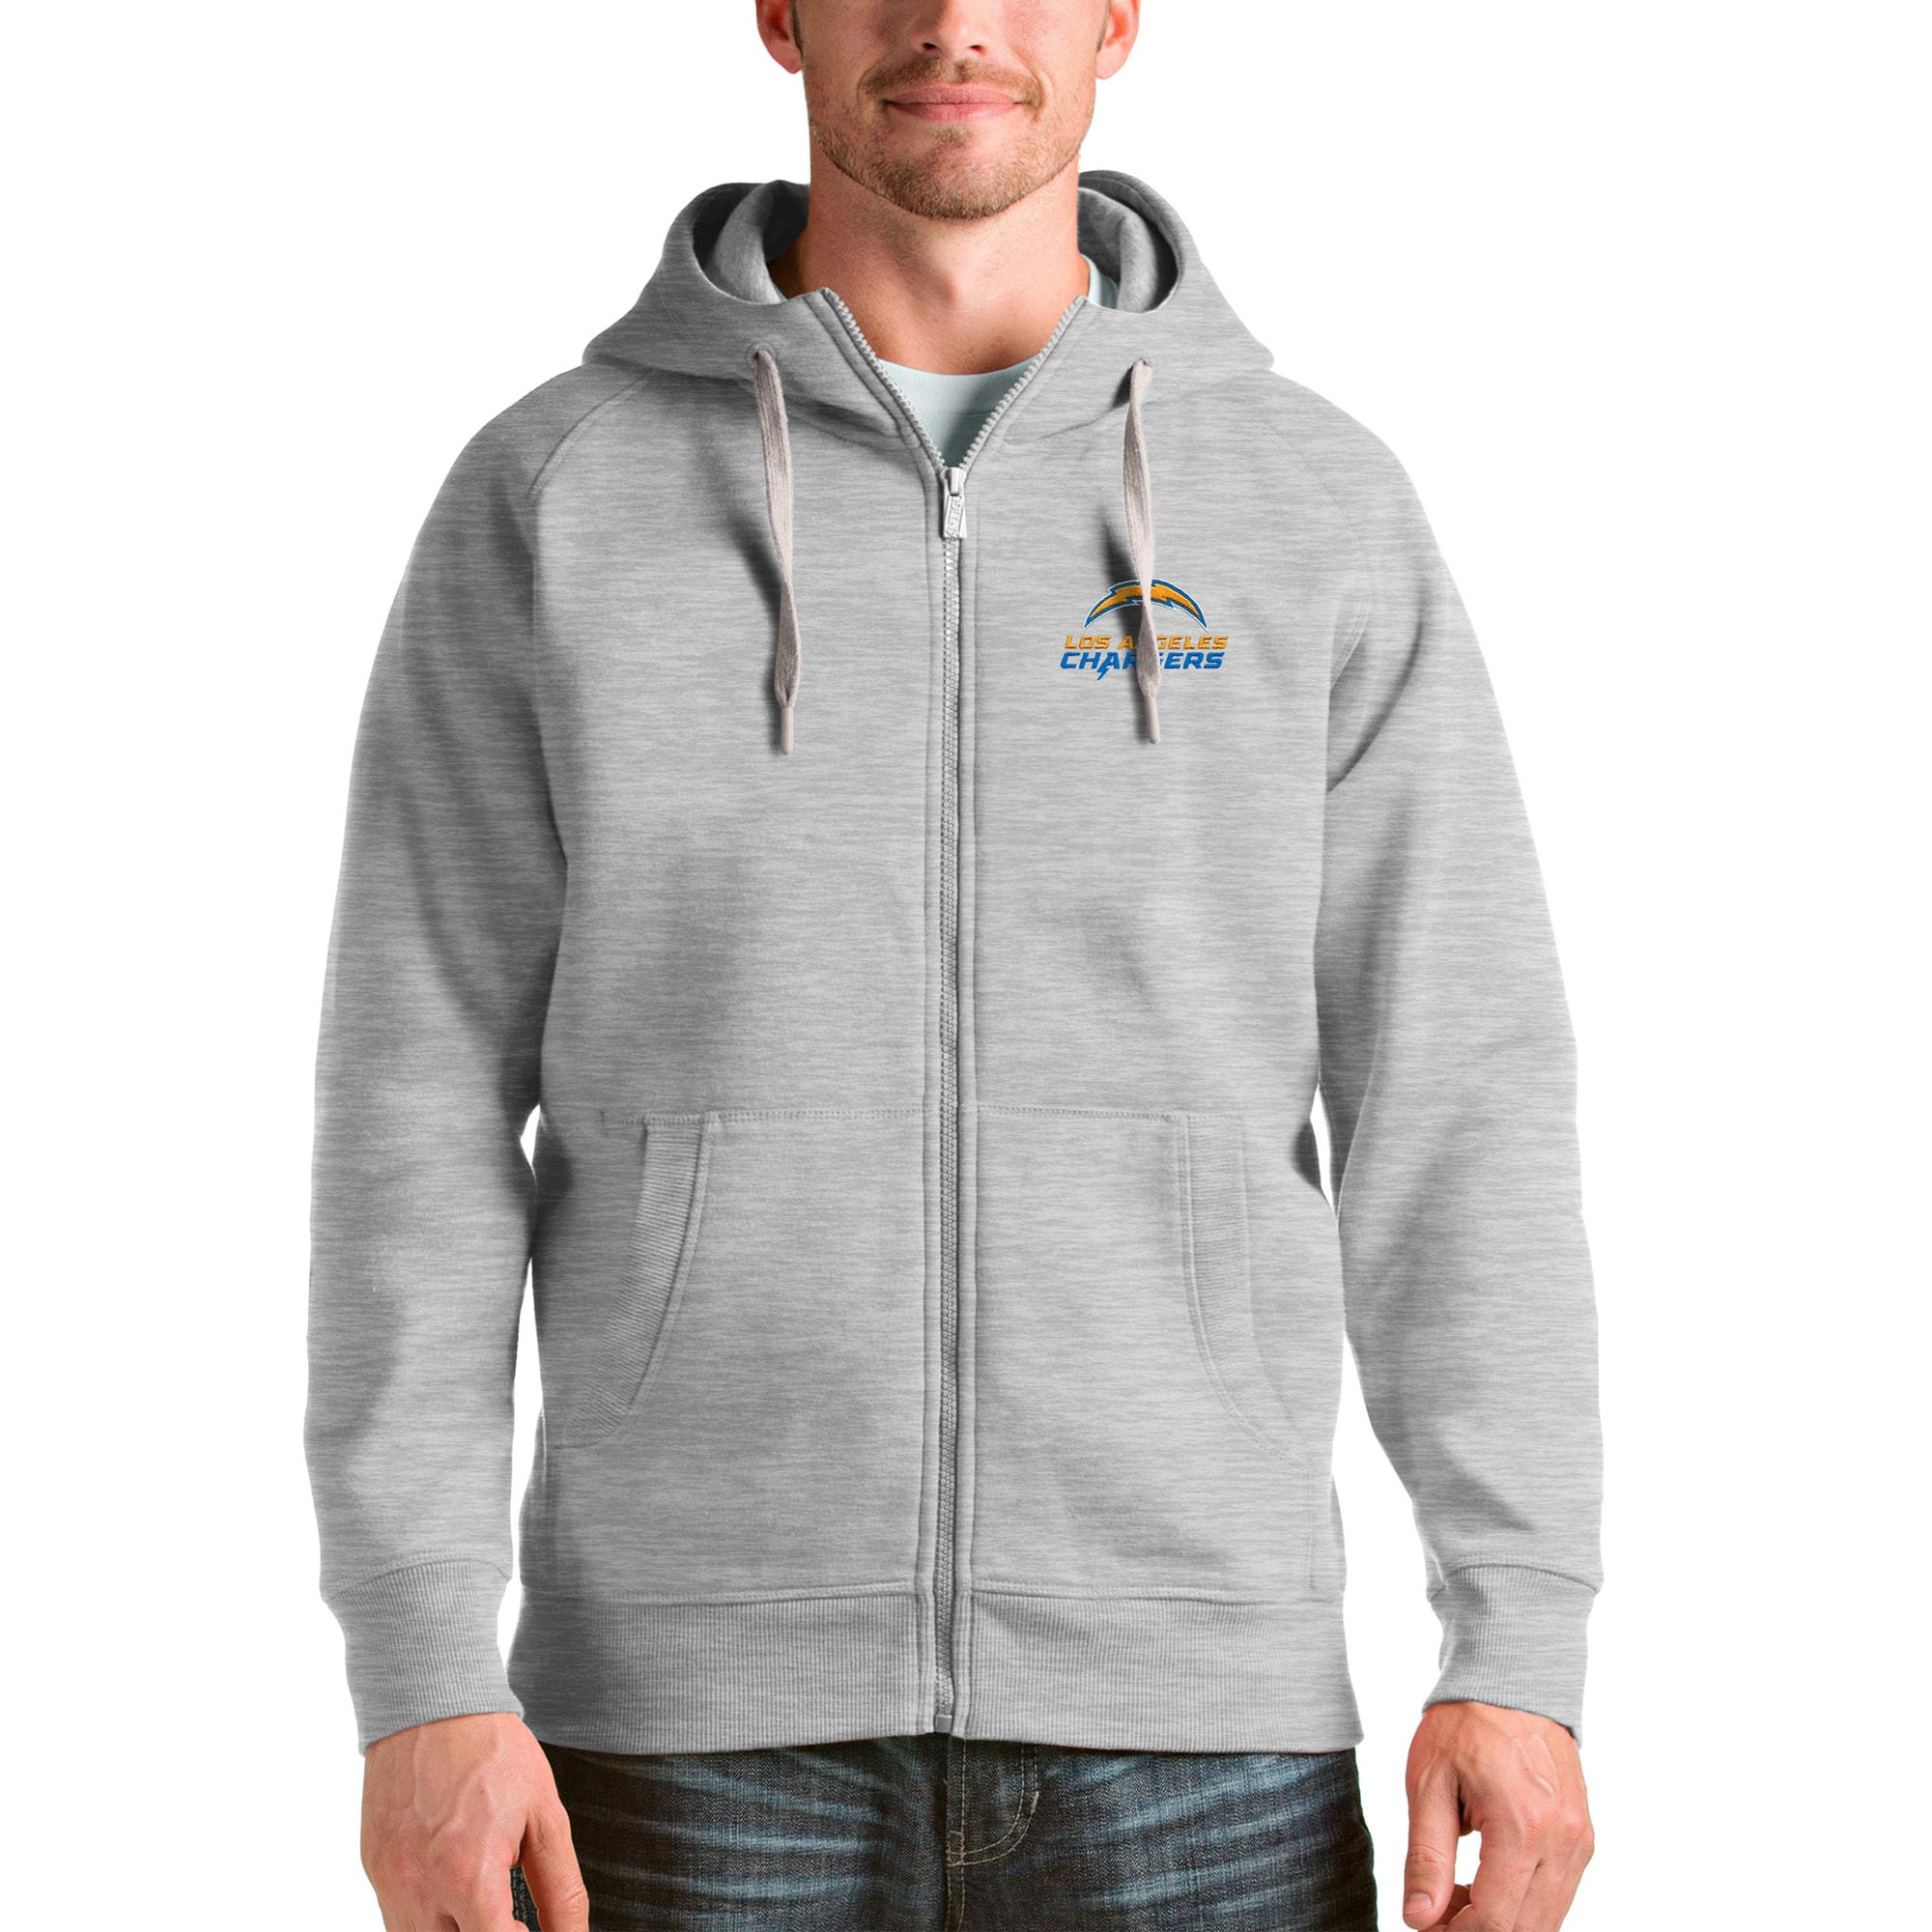 Los Angeles Chargers Antigua Victory Full-Zip Hoodie - Heather Gray